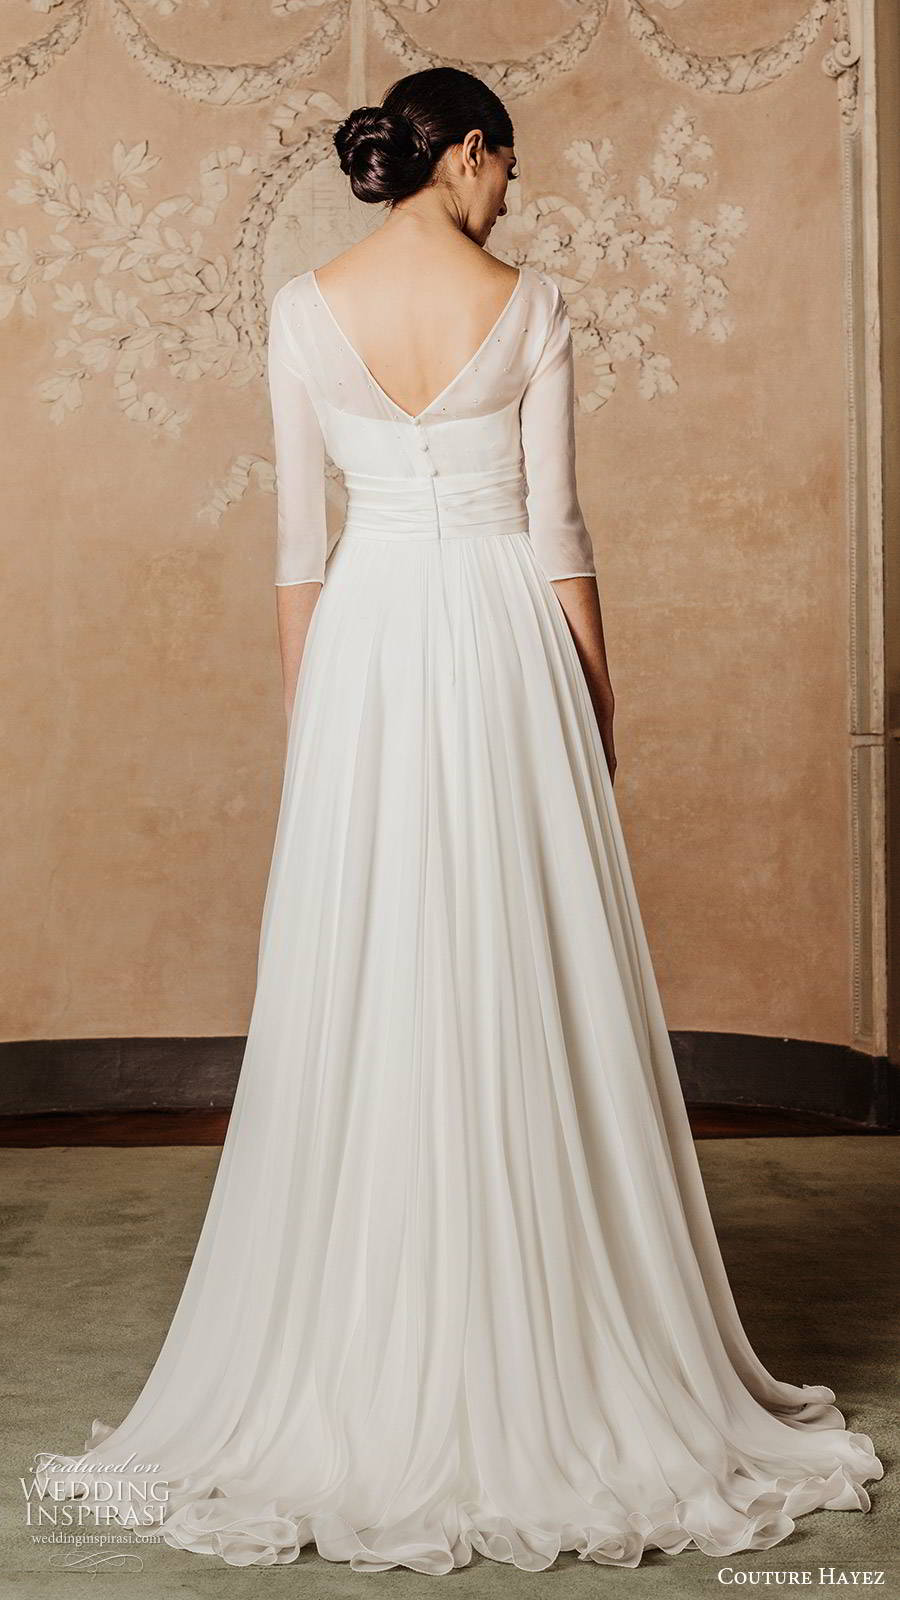 couture hayez 2020 bridal illlusion 3 quarter sleeves sheer bateau neckline semi sweetheart embellished bodice a line wedding dress (1) elegant romantic sweep train bv